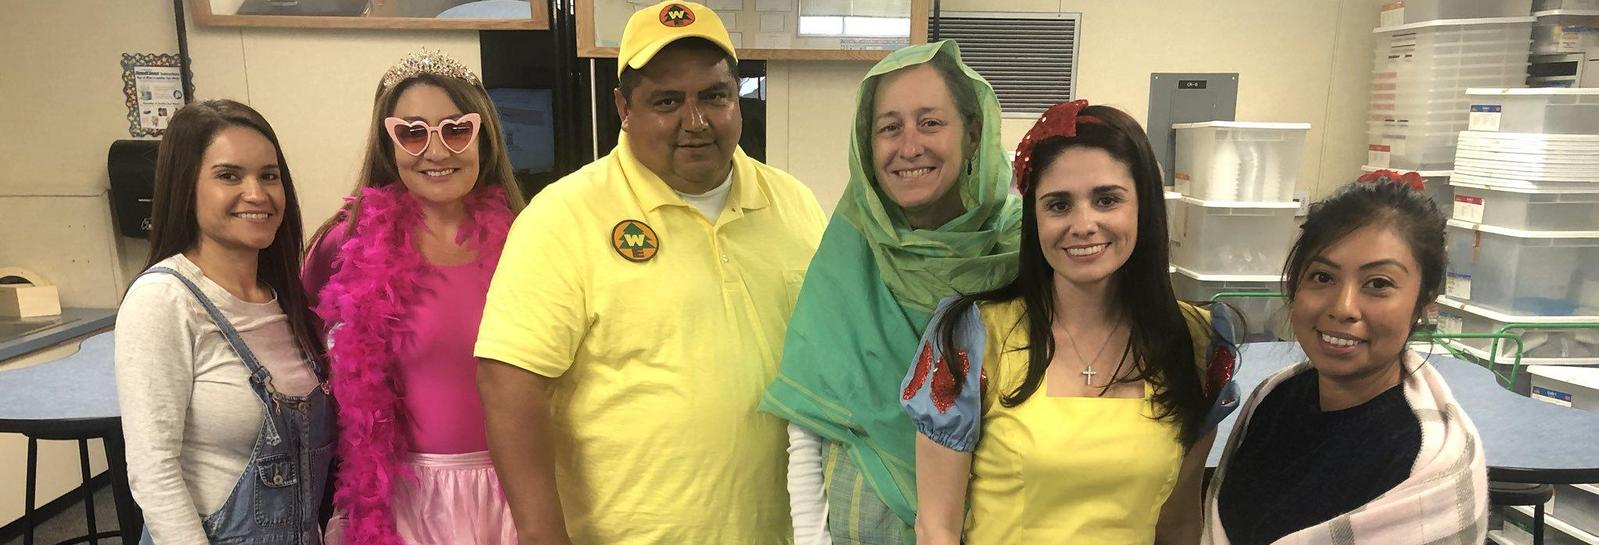 Montvue staff dressed up as their favorite characters!